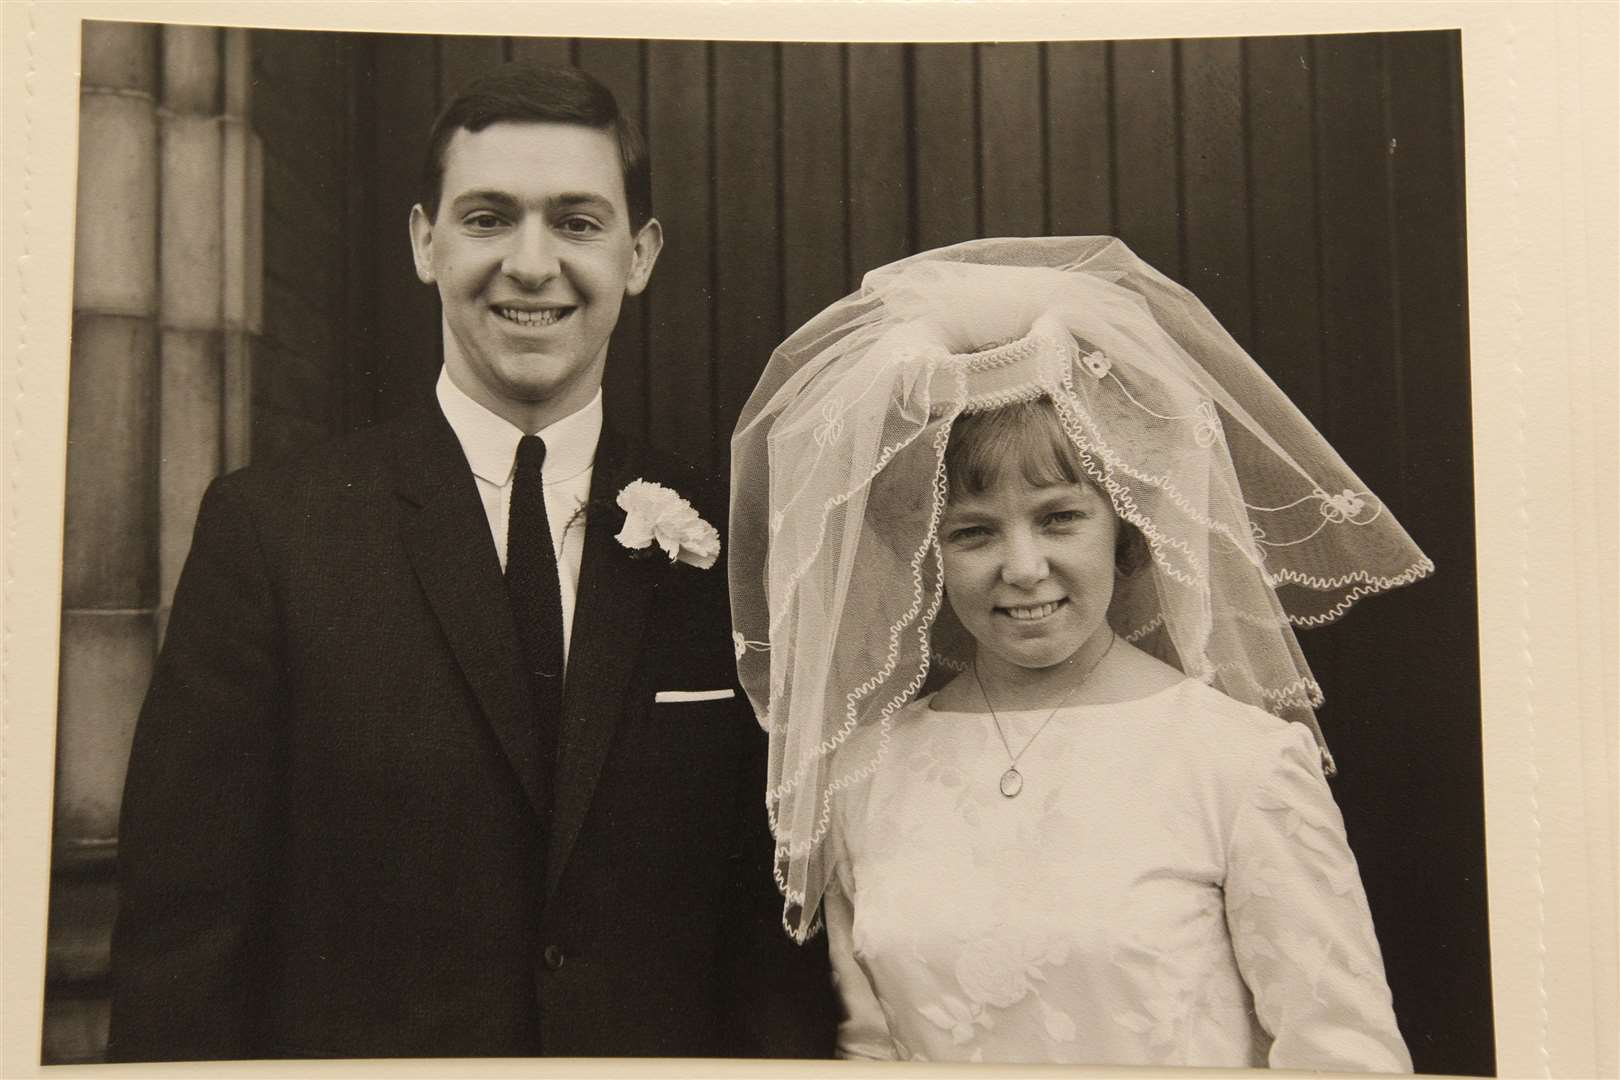 Mike And Pamela Brown Of Eastchurch Celebrate Golden Wedding